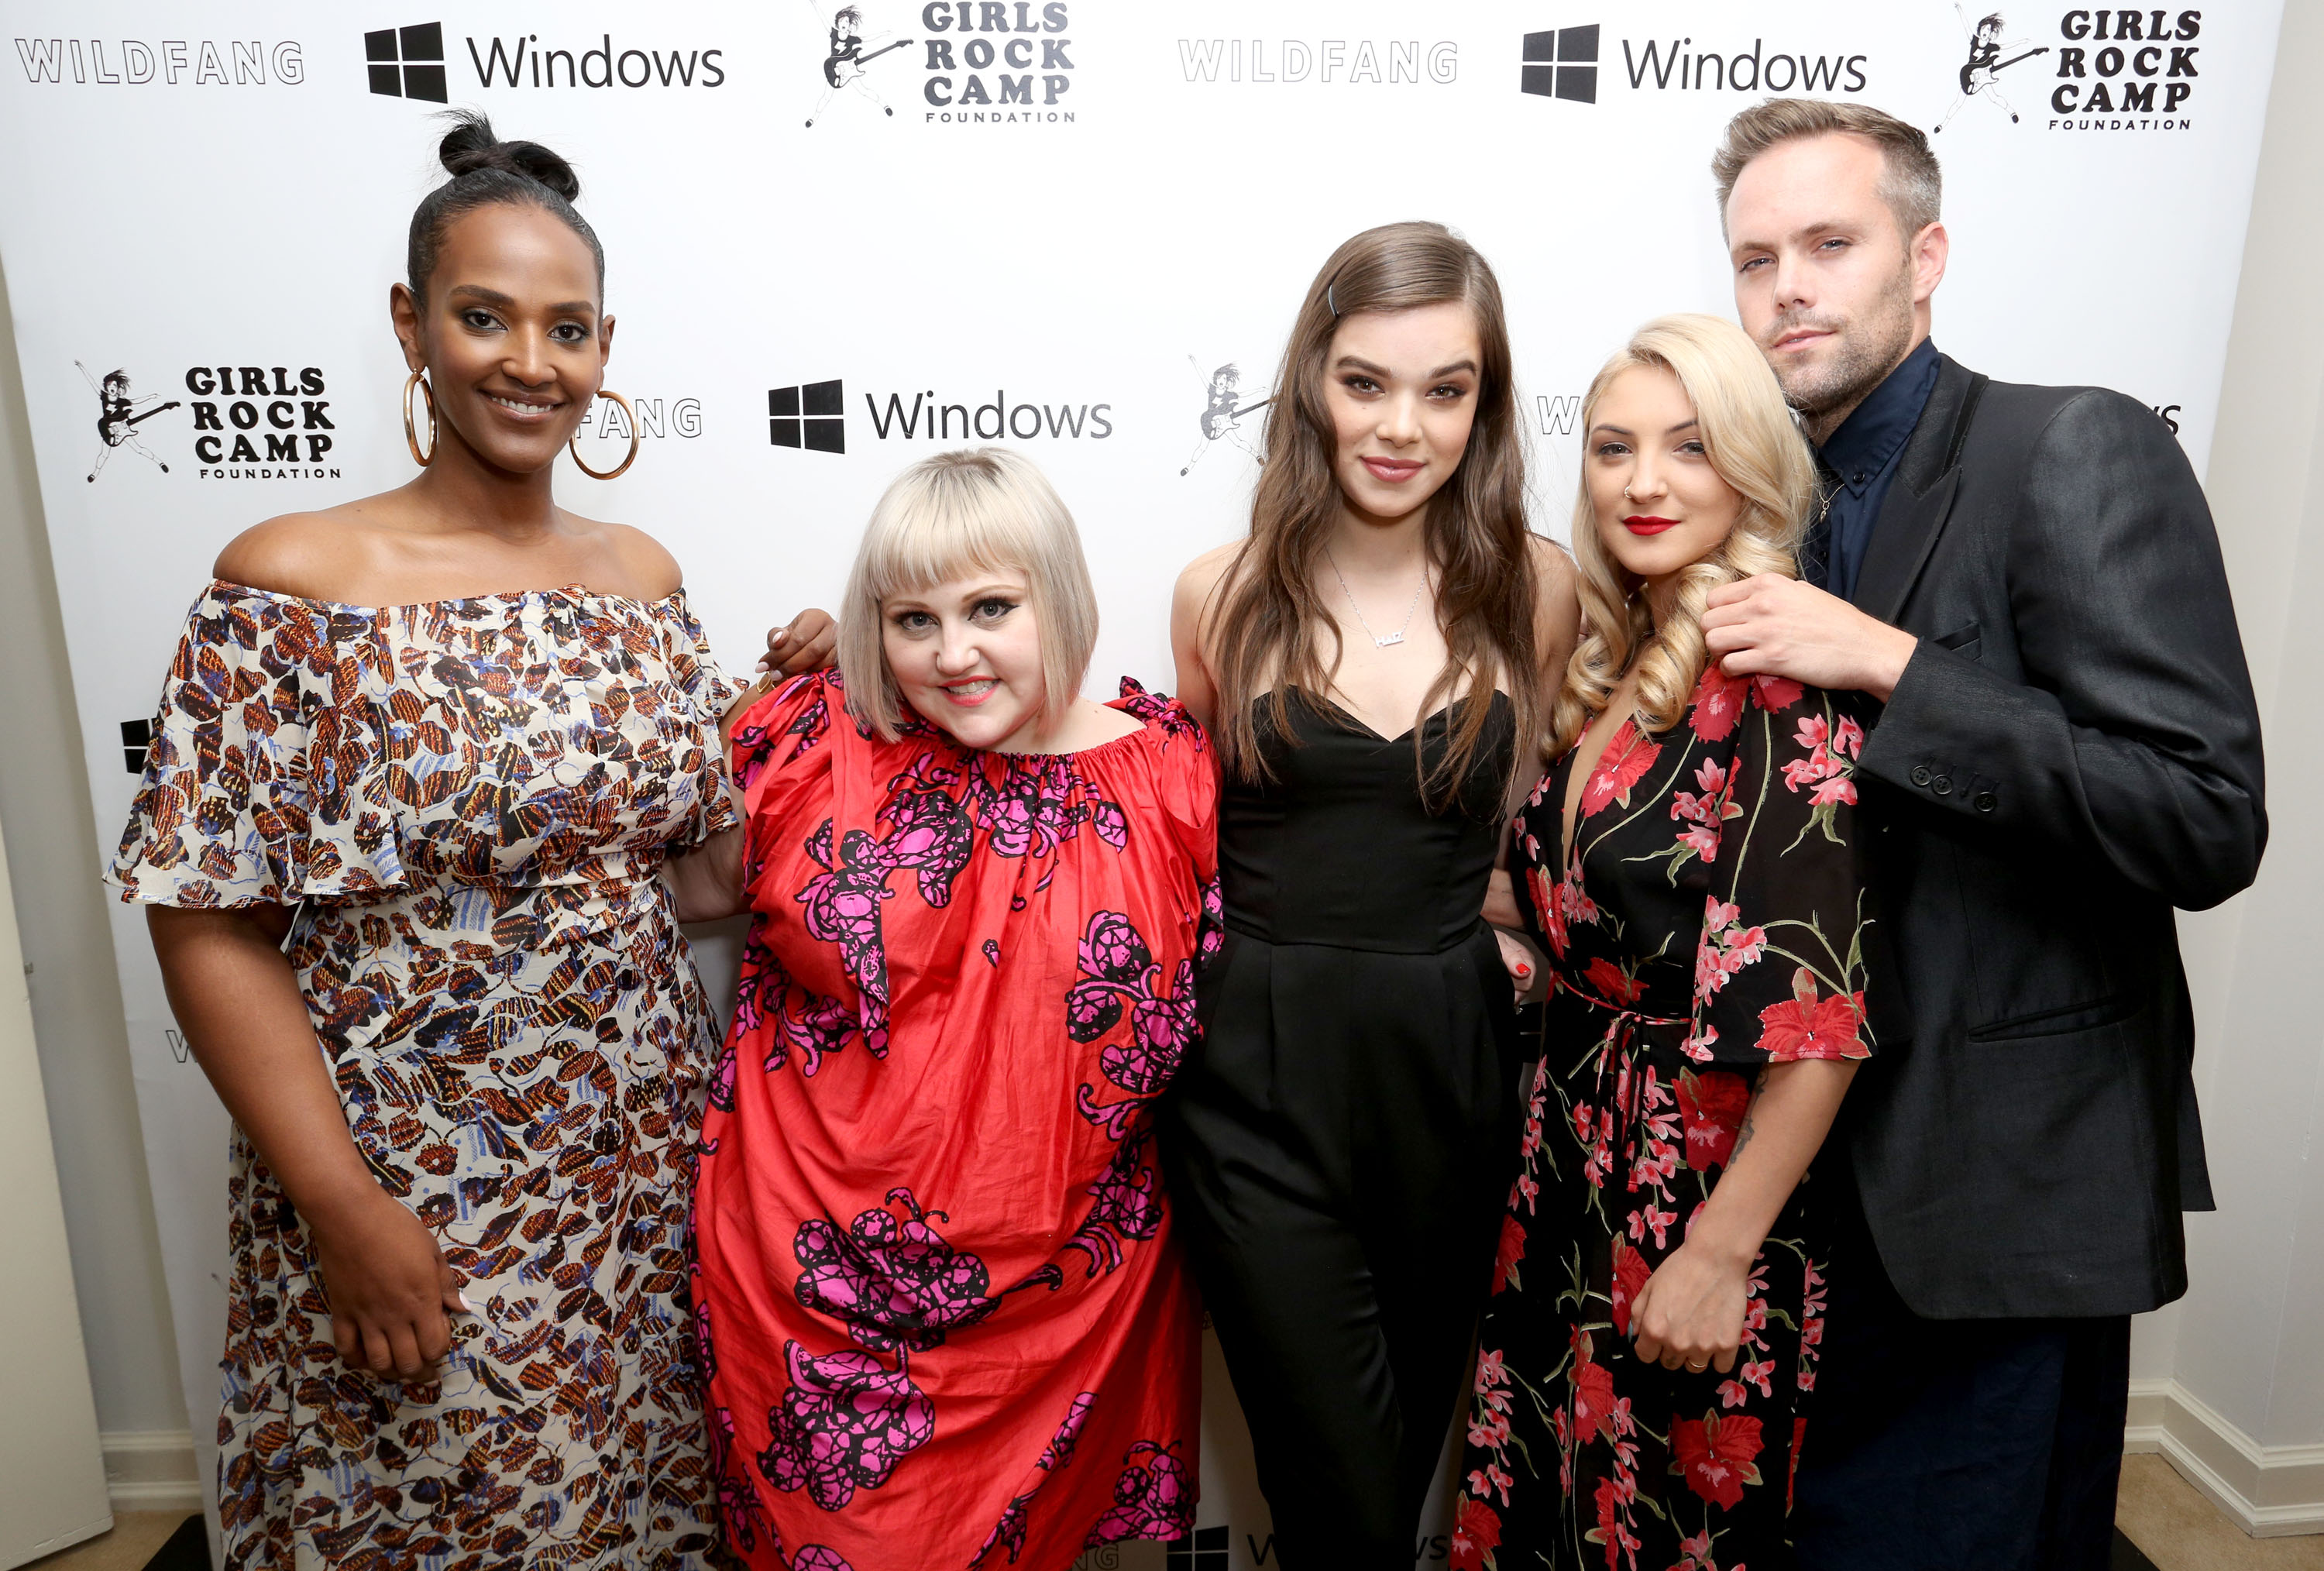 Beth Ditto with Ethiopia Habtemariam, Hailee Steinfeld, Julia Michaels and Justin Tranter.